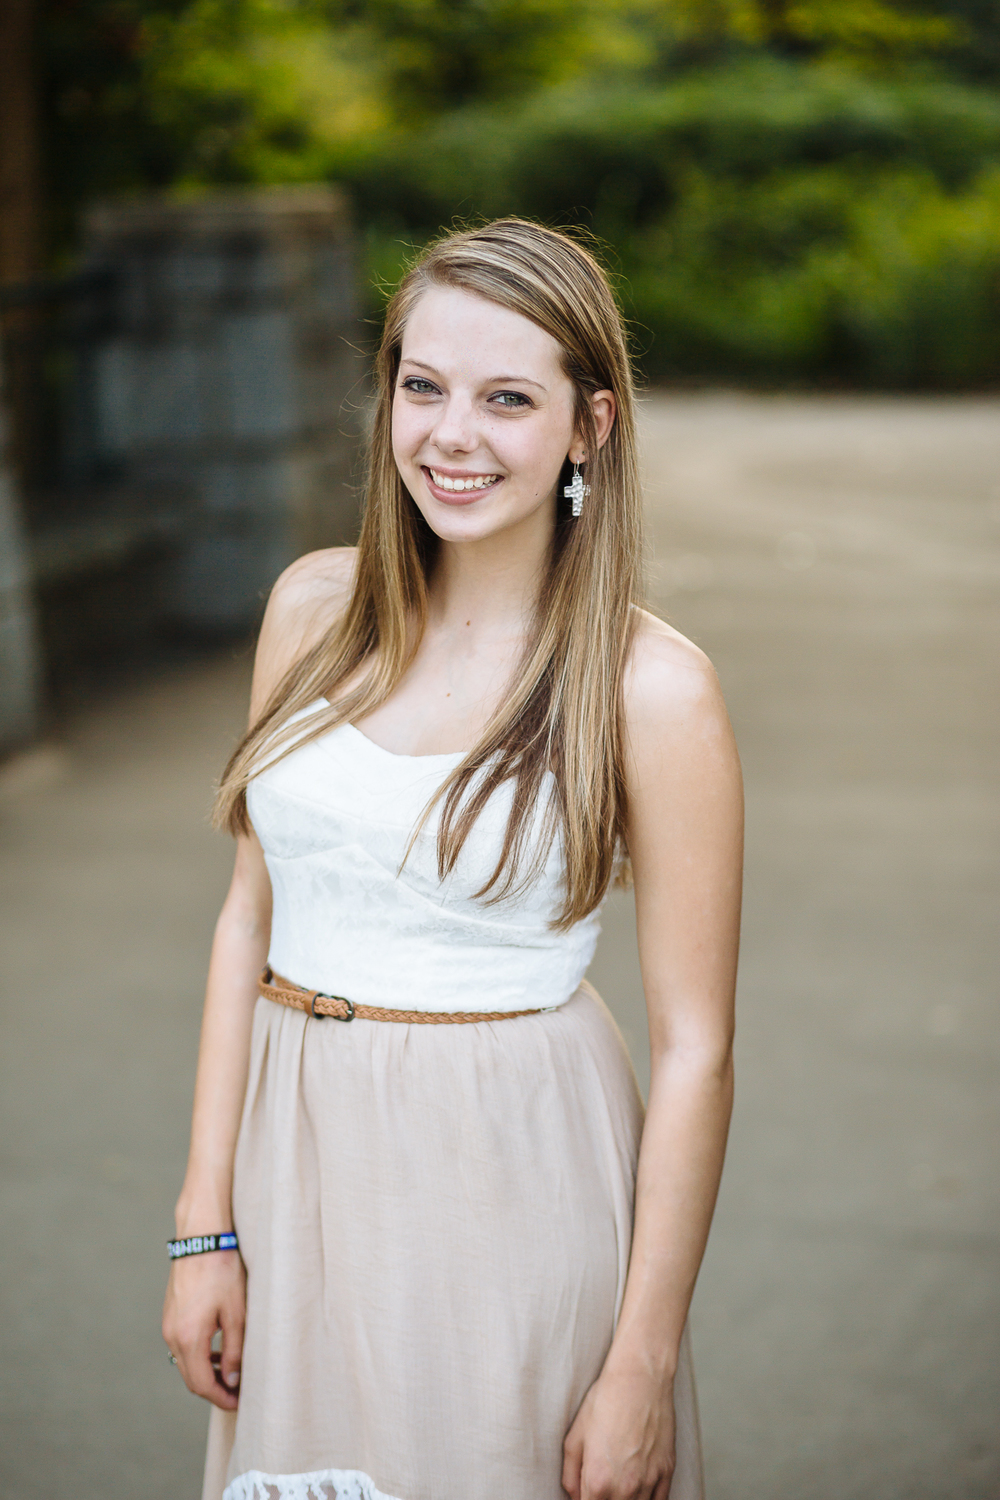 piedmont_park_atlanta_atl_photo_senior_portaits_erin_spruell_photography_28